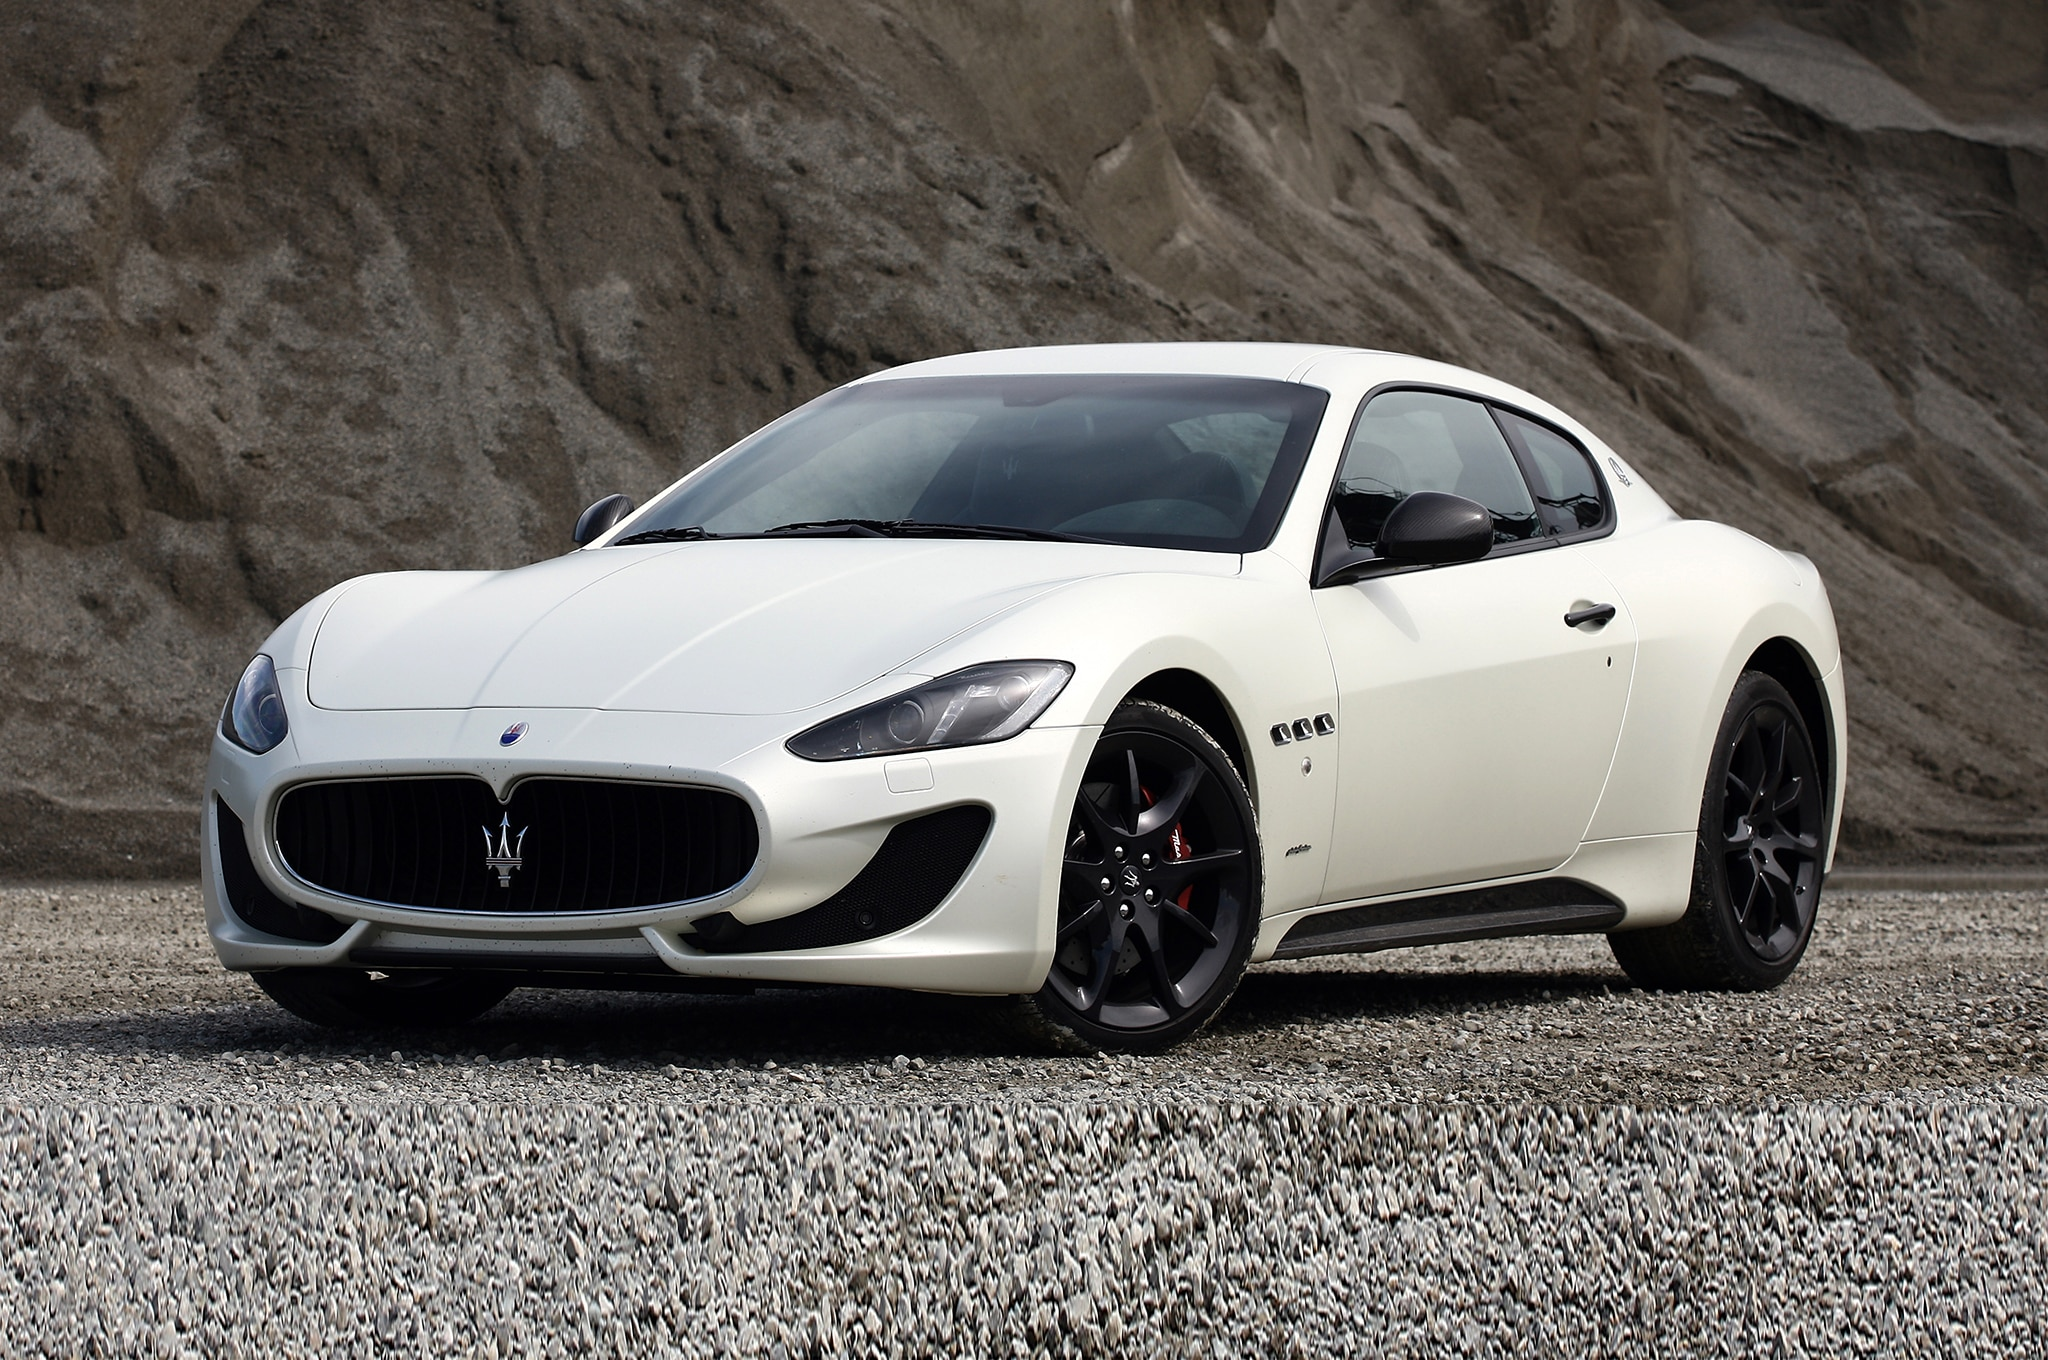 2014 maserati granturismo grancabrio mc gain centennial editions. Black Bedroom Furniture Sets. Home Design Ideas